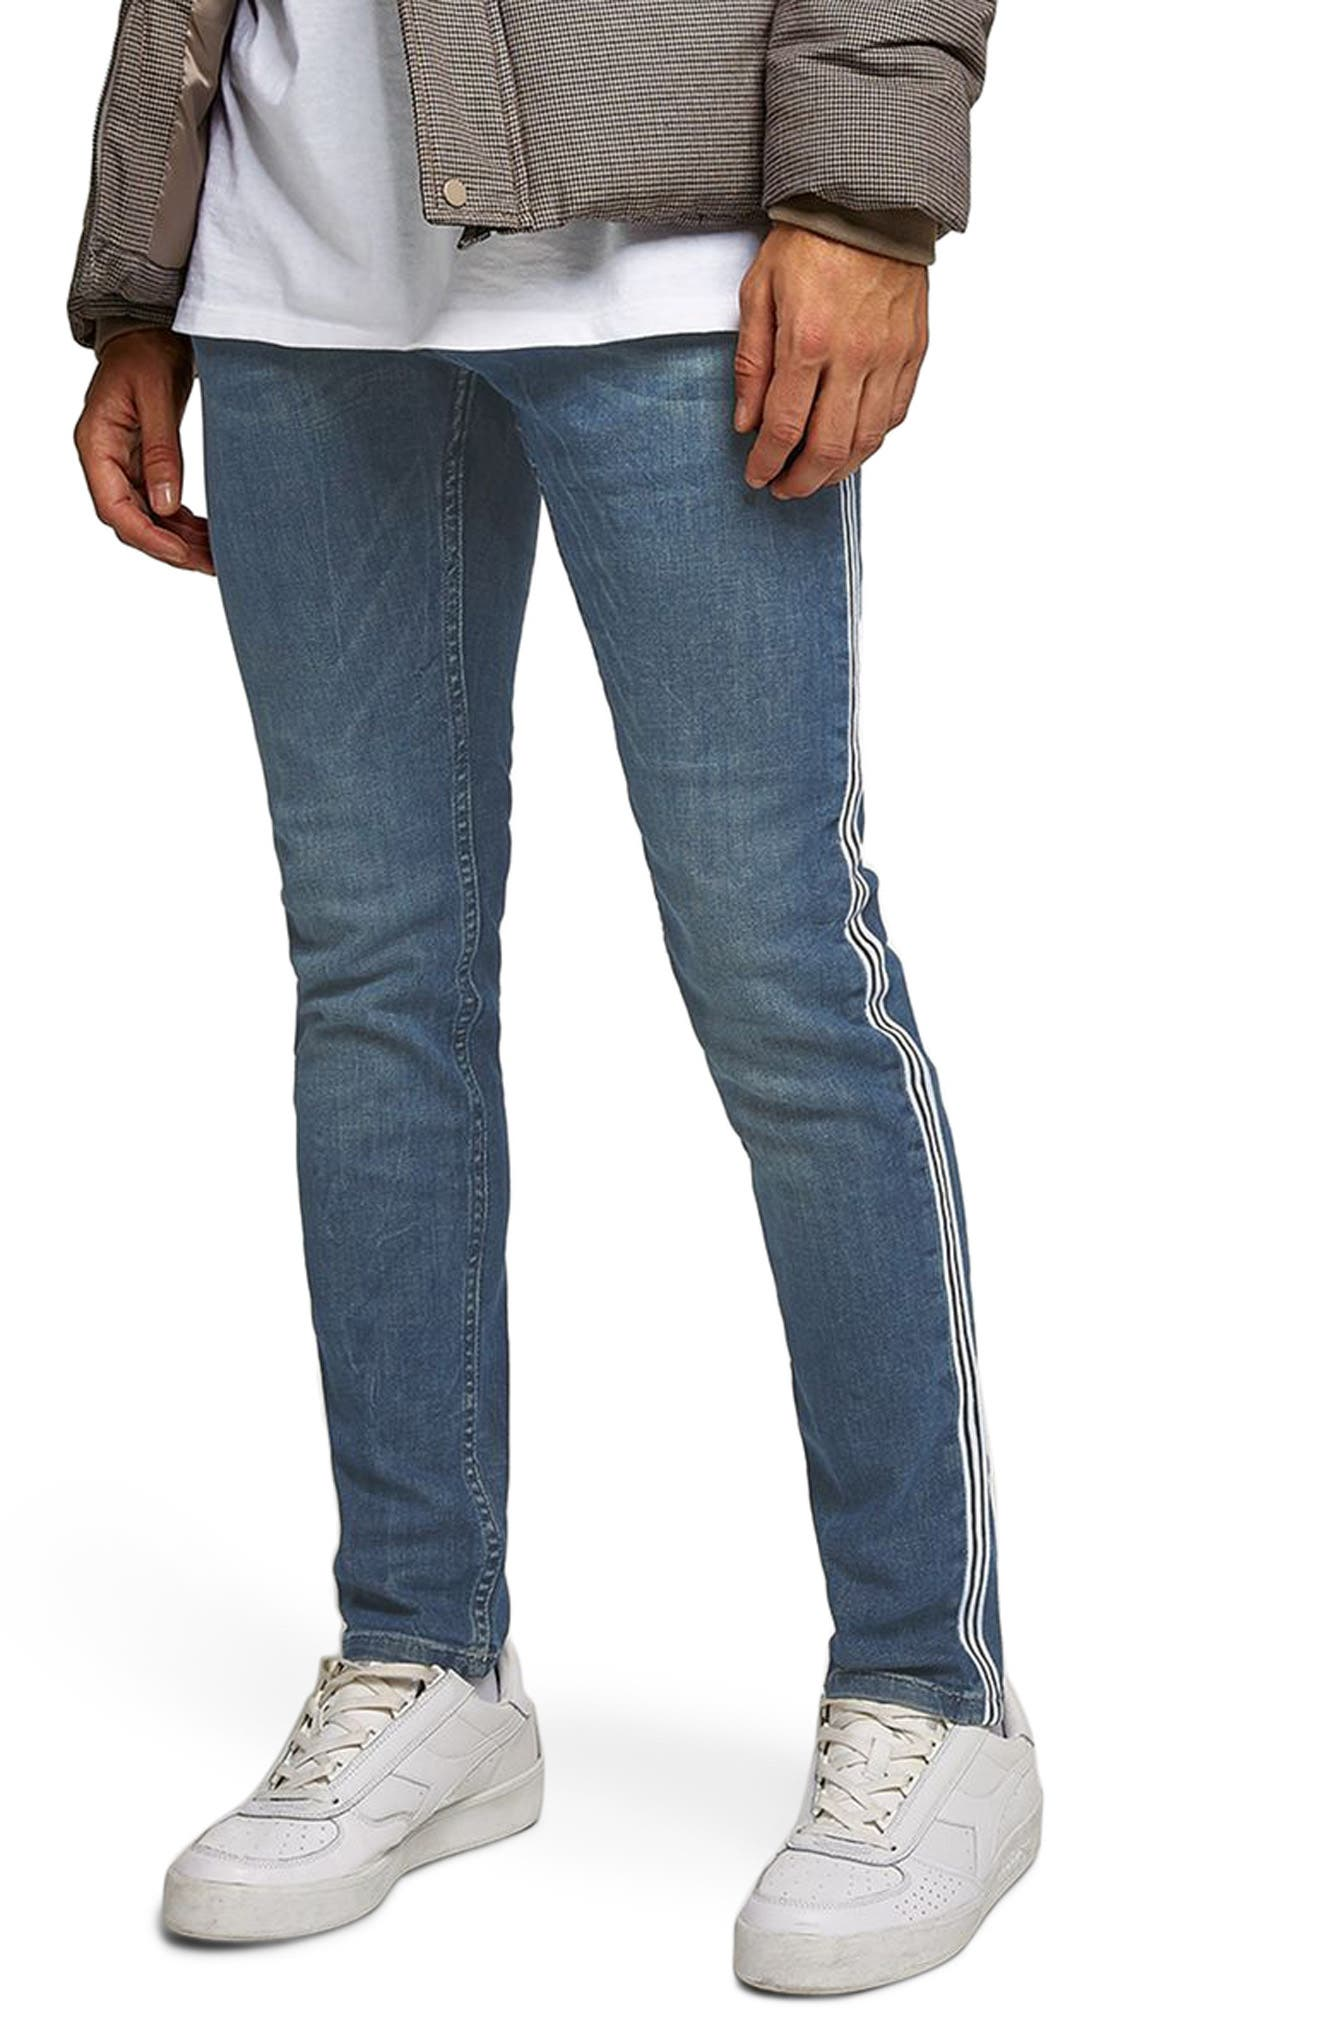 TOPMAN Tape Stretch Skinny Fit Jeans, Main, color, 400